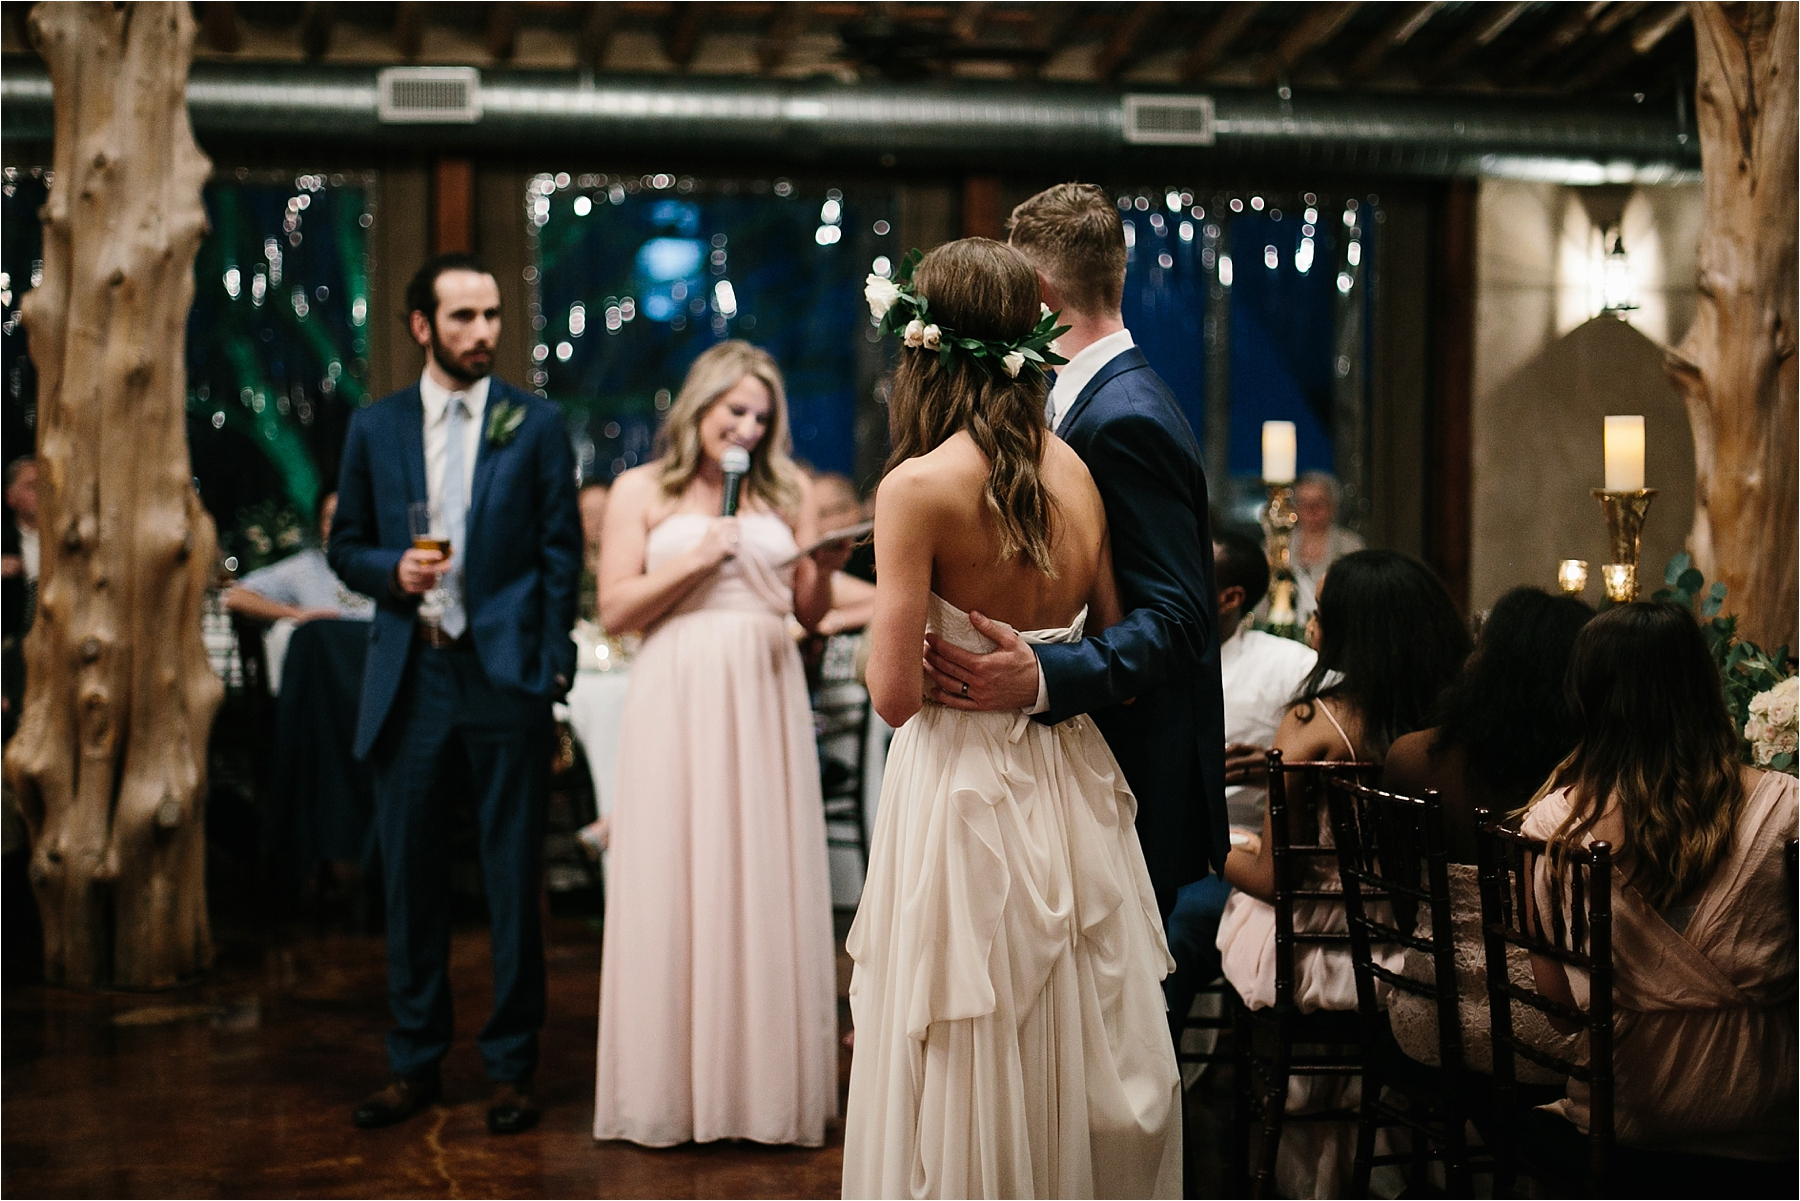 Lauren + Matt __ an intimate, emotional, blush pink, navy blue, and greenery toned wedding accents at the Brooks at Weatherford by North Texas Wedding Photographer Rachel Meagan Photography153